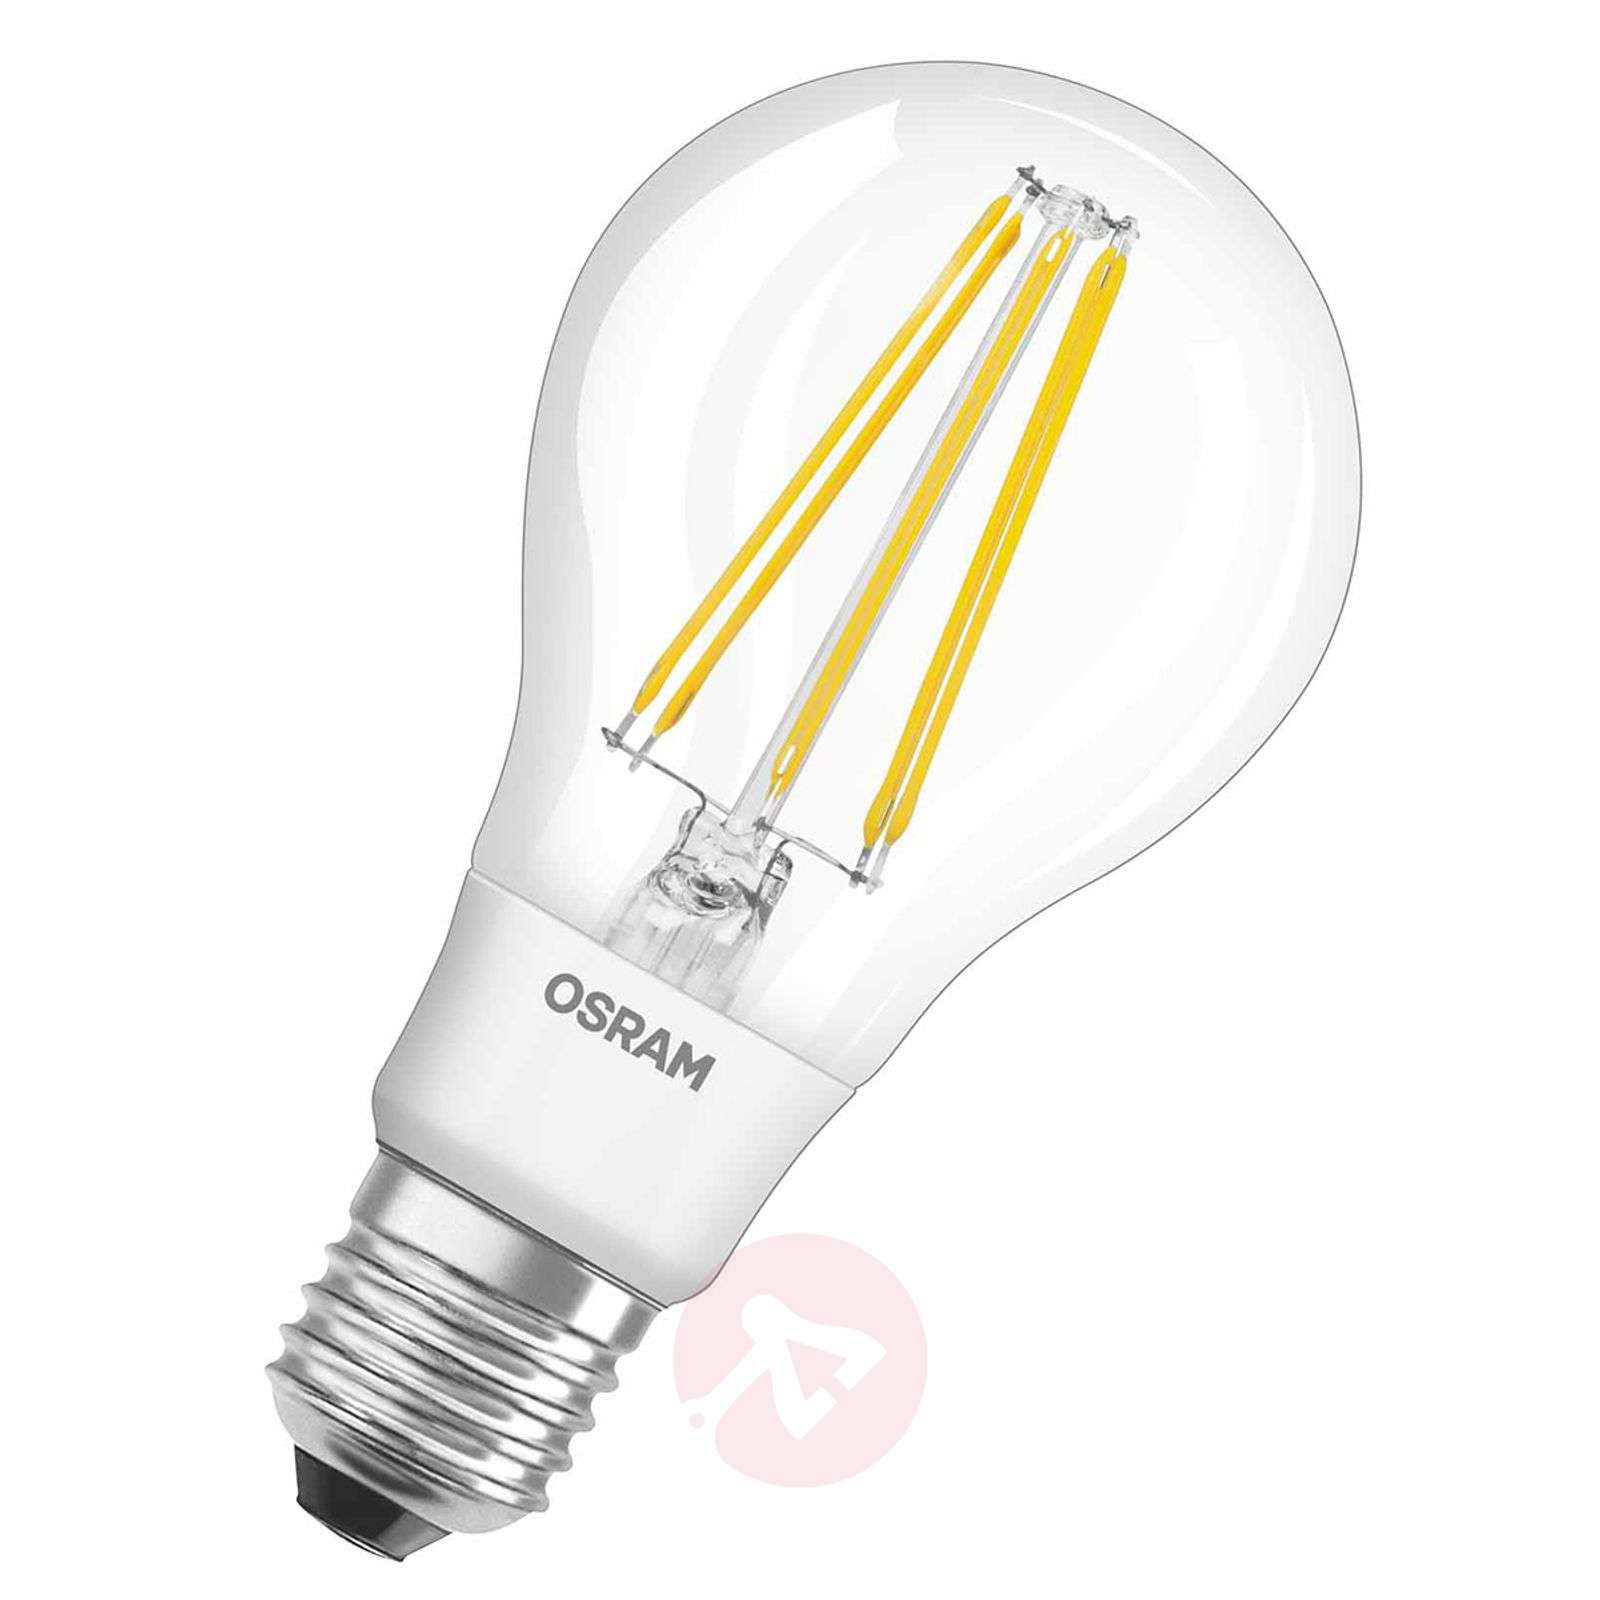 Acquista e27 11w 827 lampadina led retrofit for Lampadina e27